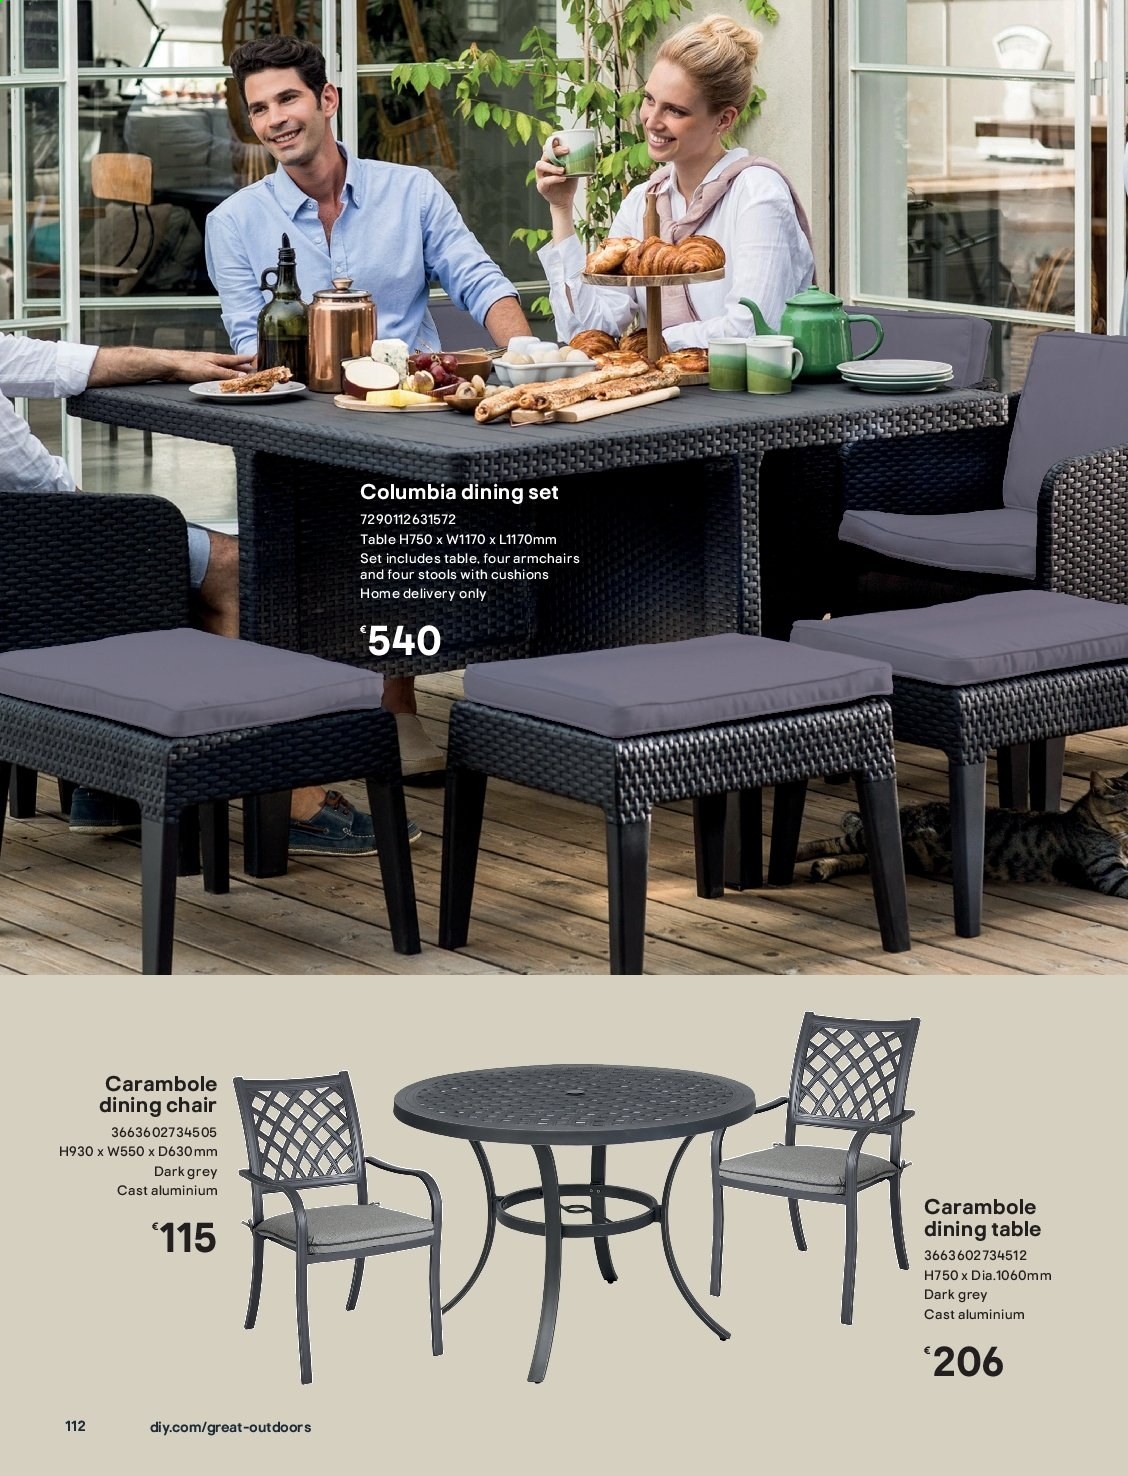 B&Q offer  - Sales products - dining set, dining table, columbia, table, chair. Page 112.